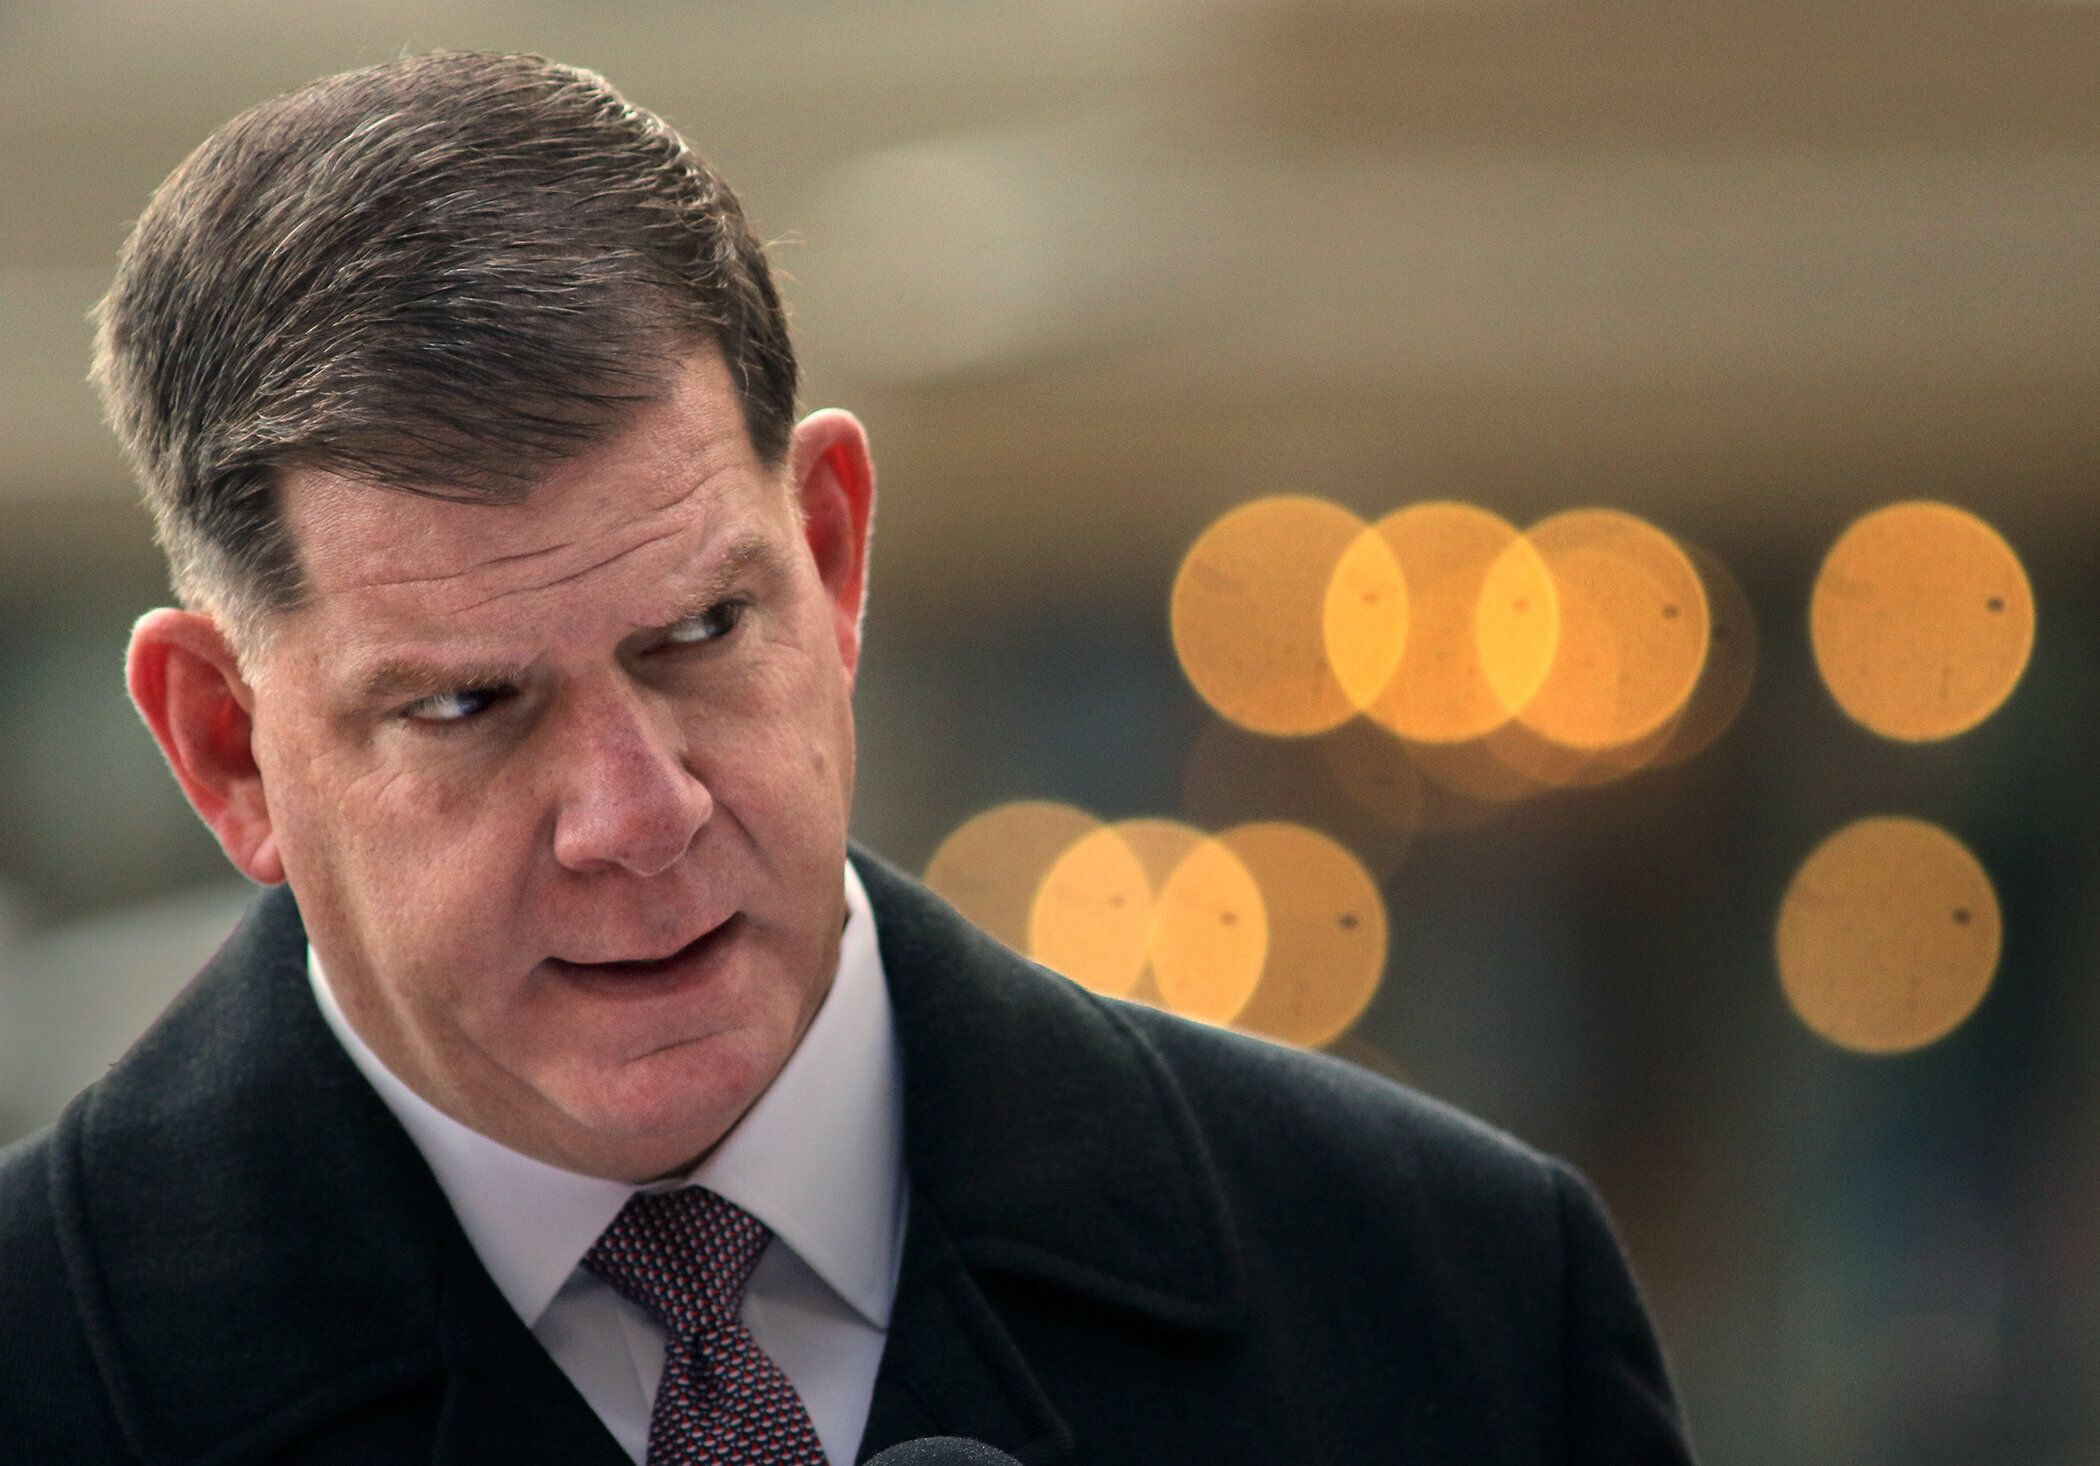 Marty Walsh has been Boston's mayor since 2013.